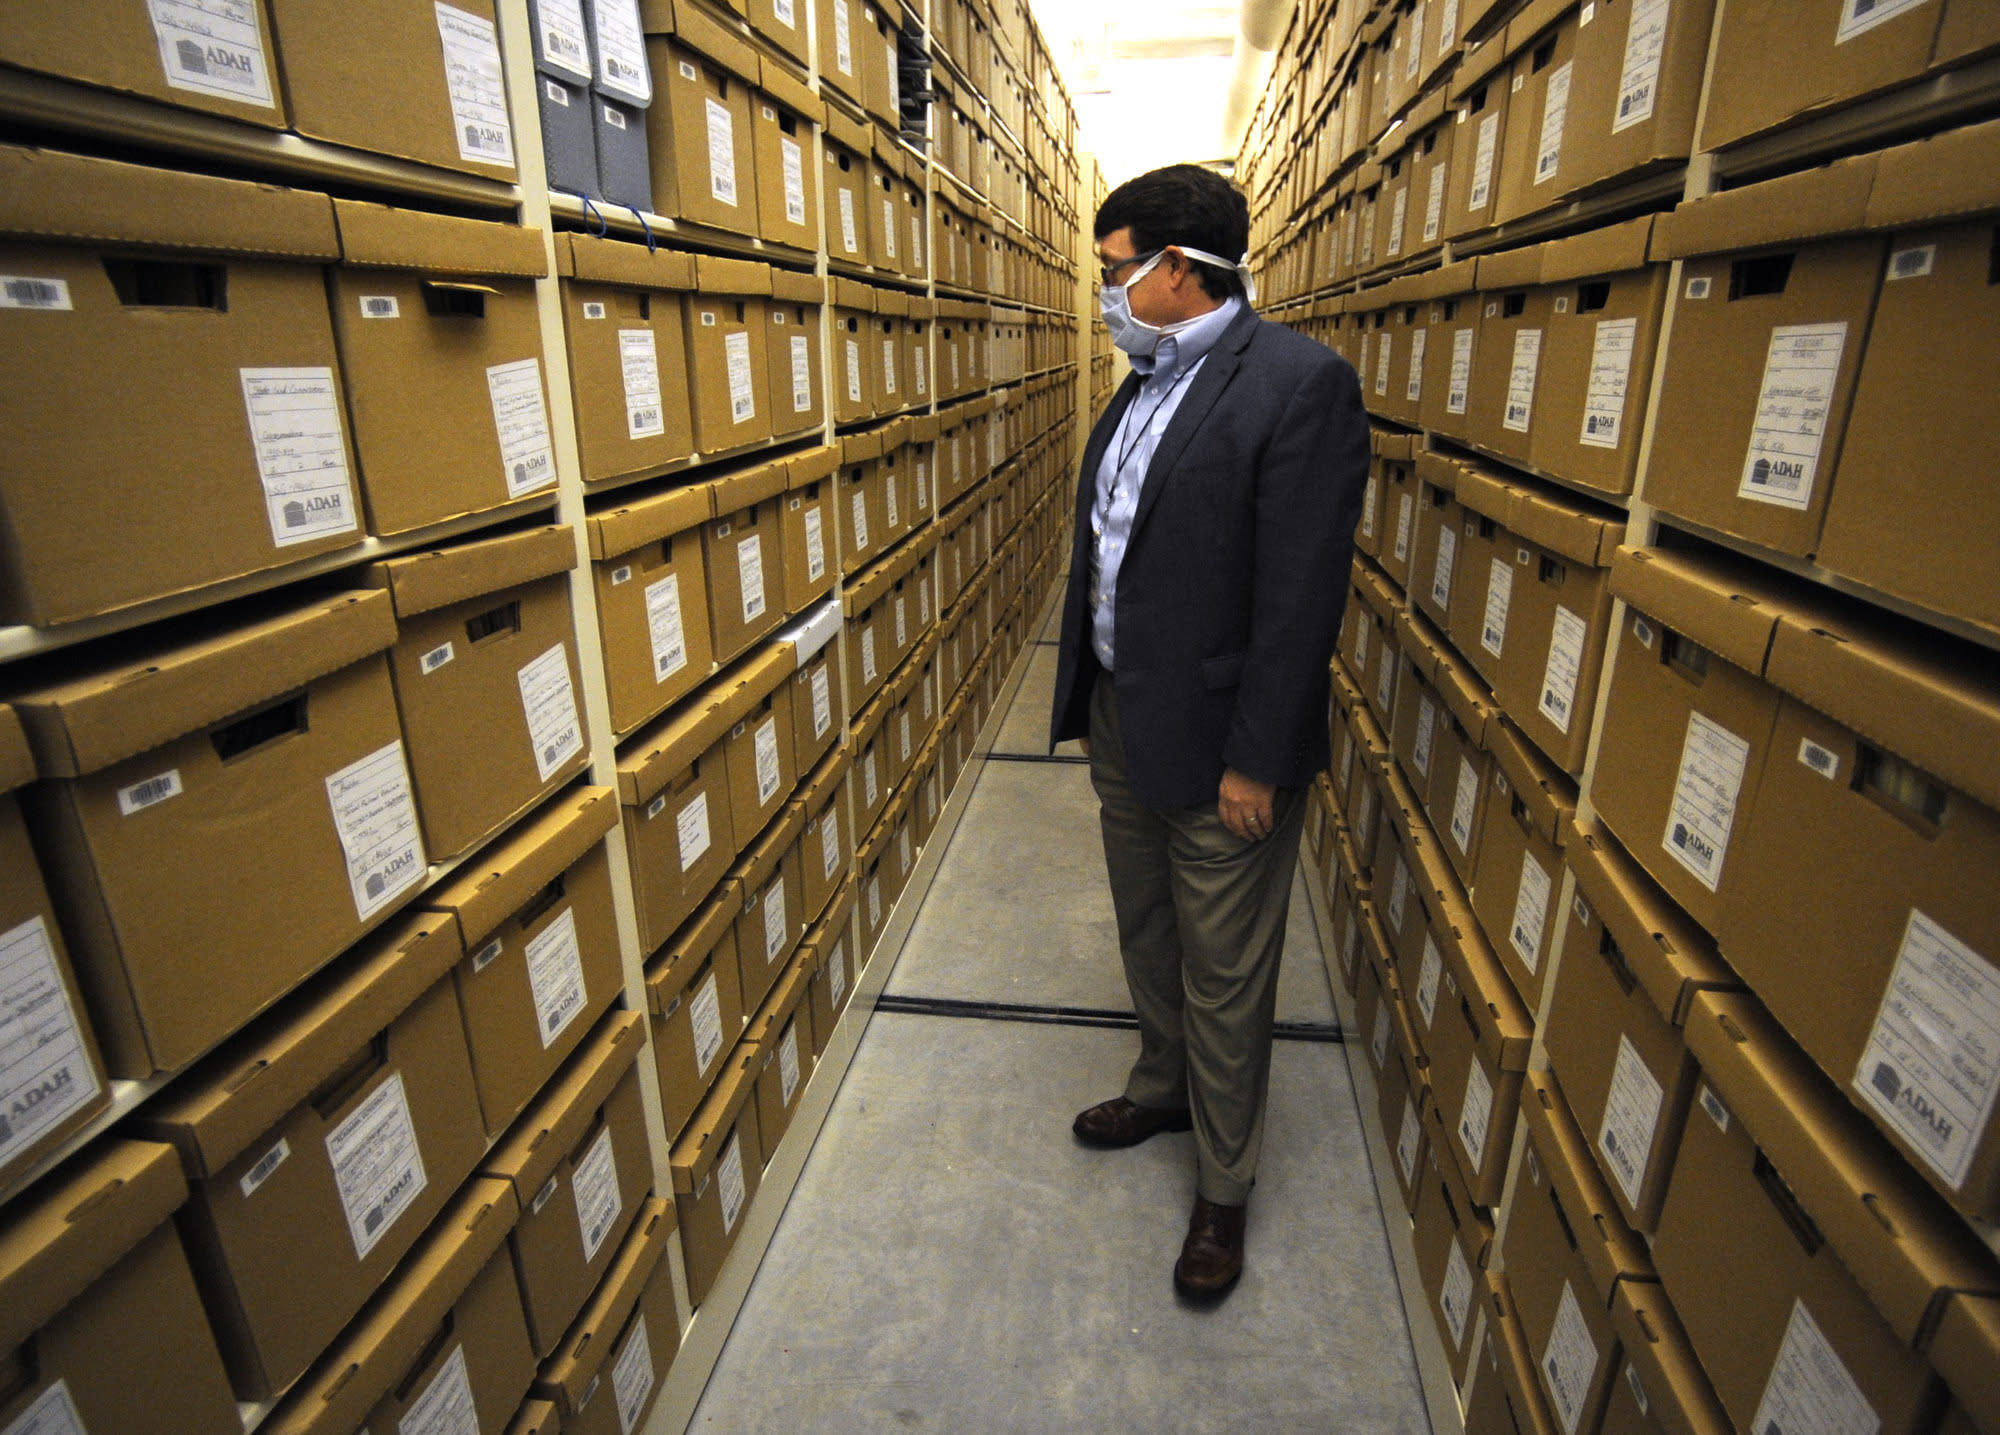 """Steve Murray, director of the Alabama Department of Archives and History, looks through boxes containing archival materials in Montgomery, Ala., on Thursday, Aug. 13, 2020. Murray and other current leaders of the agency are confronting the early legacy of the department, which once embraced the """"lost cause"""" version of Civil War history that diminished the role of slavery and portrayed the Southern cause as noble. (AP Photo/Jay Reeves)"""